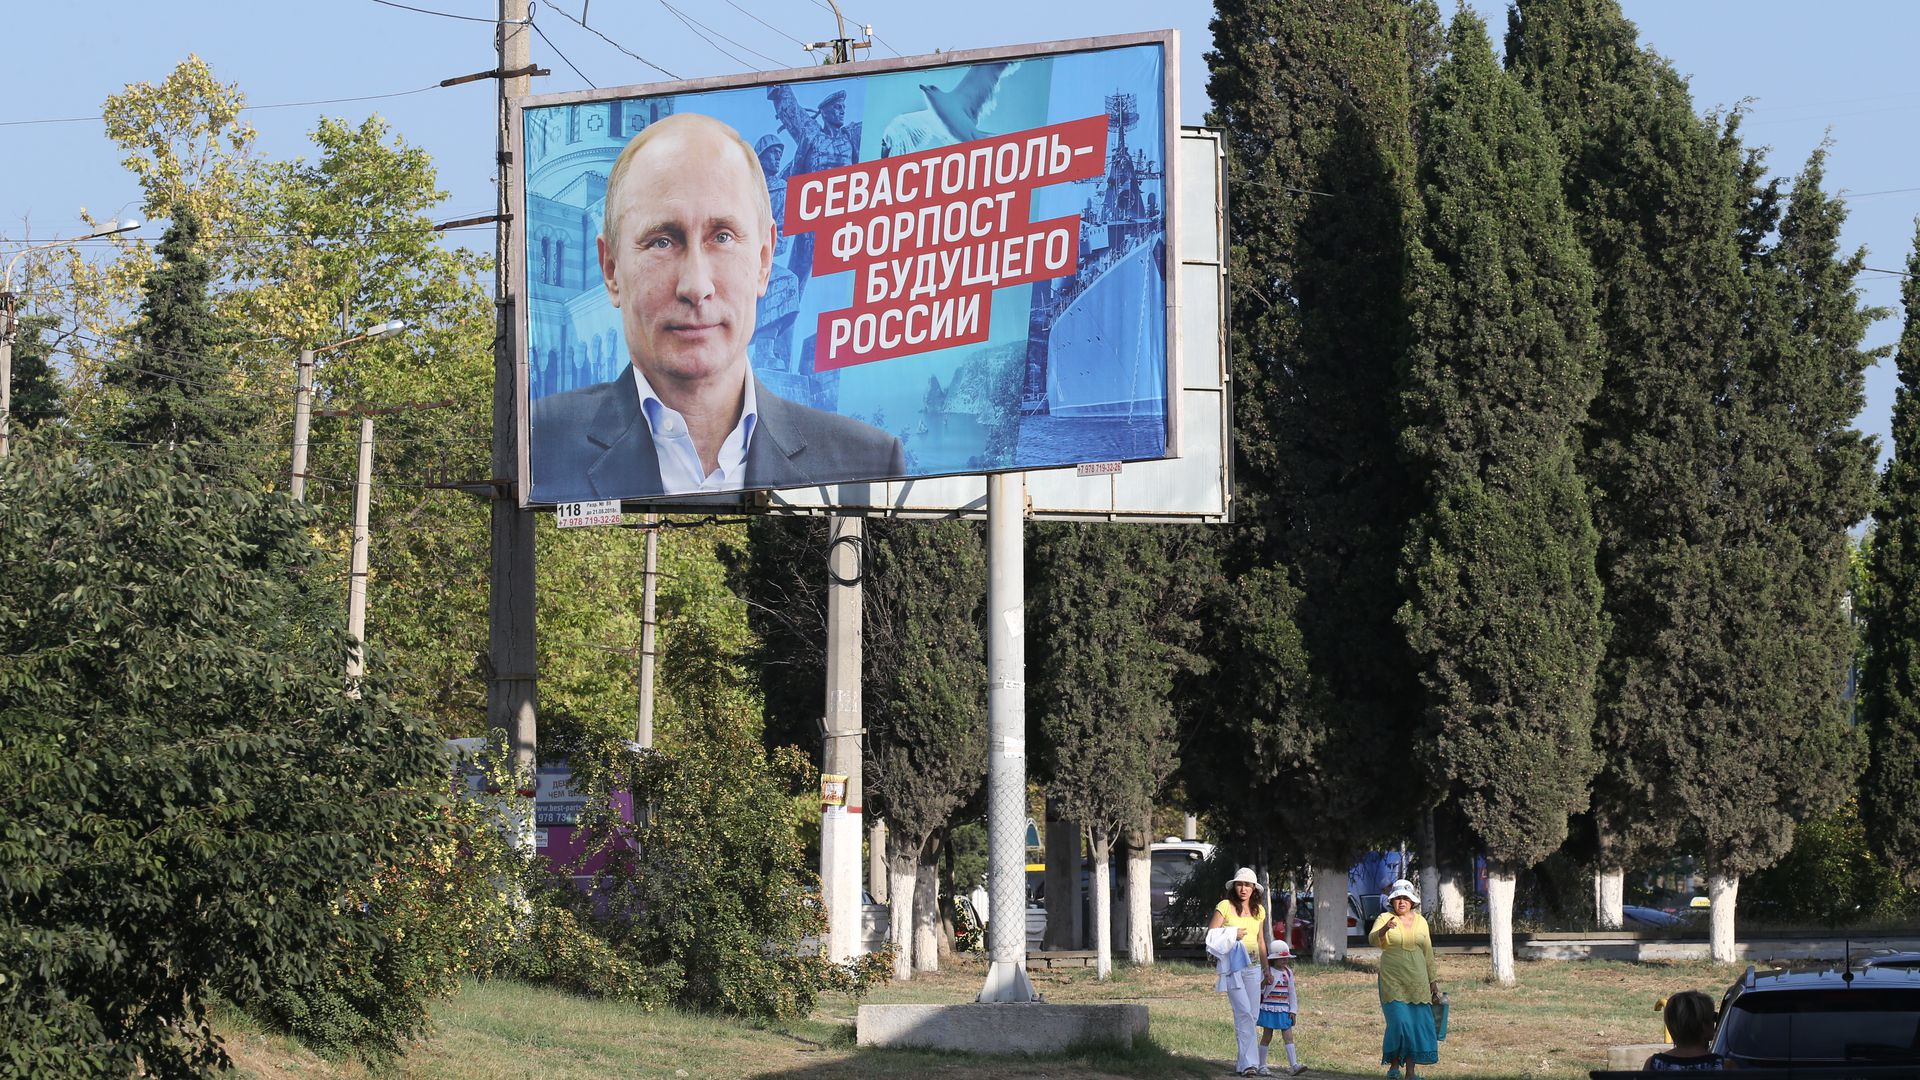 Billboard in Sevastopol, Crimea, with Putin's face